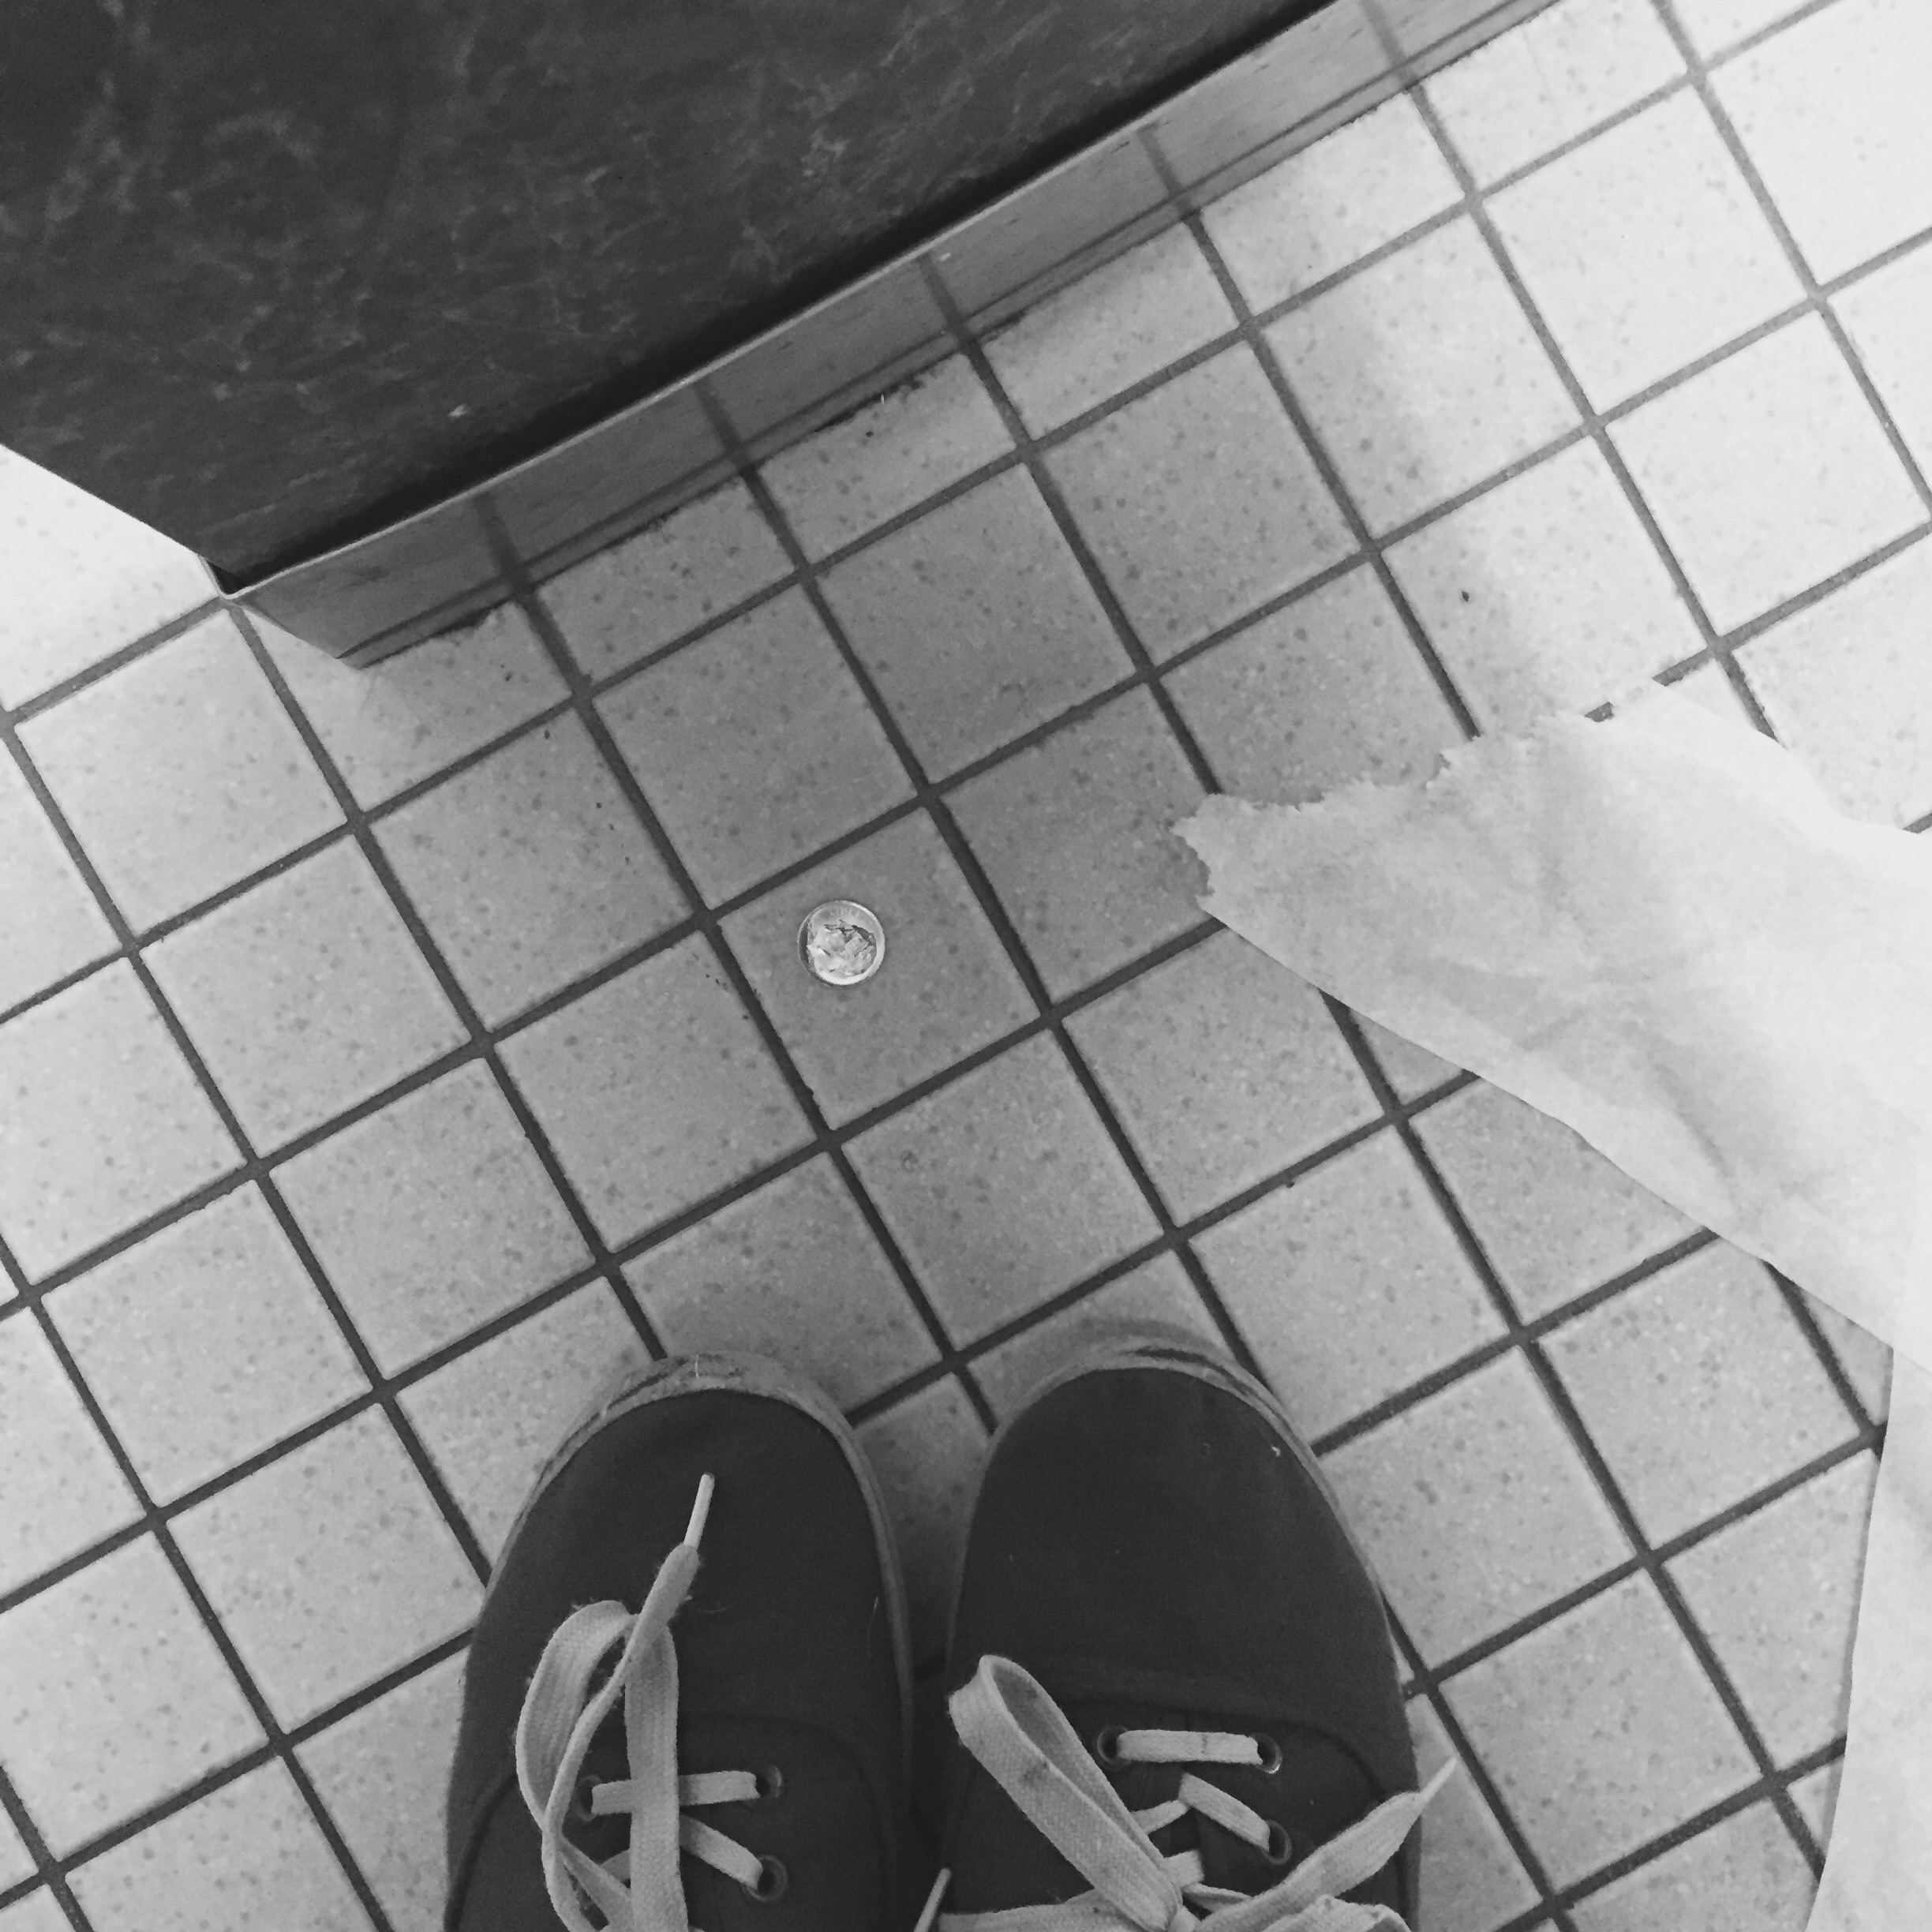 I had a very long internal struggle over this dime I found in the Barnes and Nobel bathroom. I ended up leaving it on the bathroom floor for someone else to have an internal struggle over.